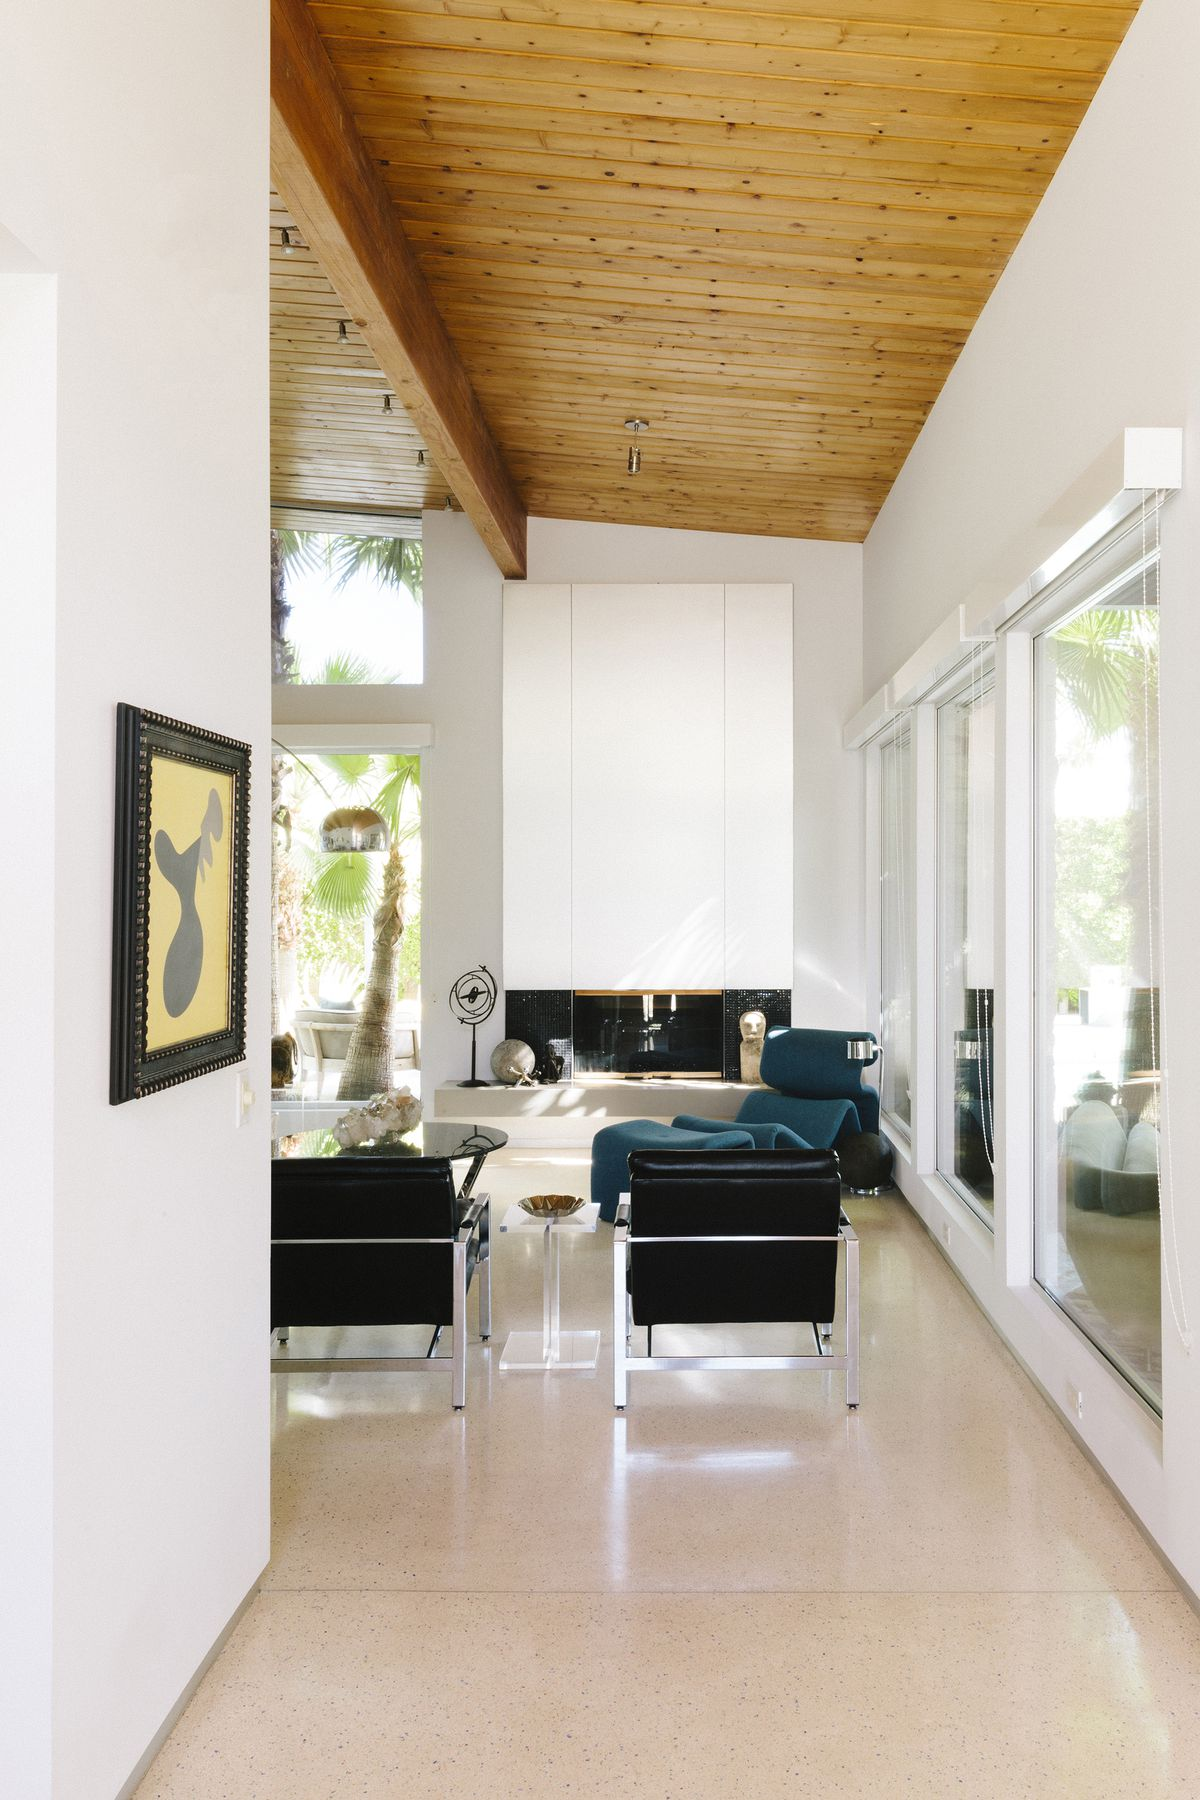 A hallway that opens up to a living area. The ceiling is wooden and the walls are painted white. The living area has a blue armchair and two black chairs. There are windows along two walls.